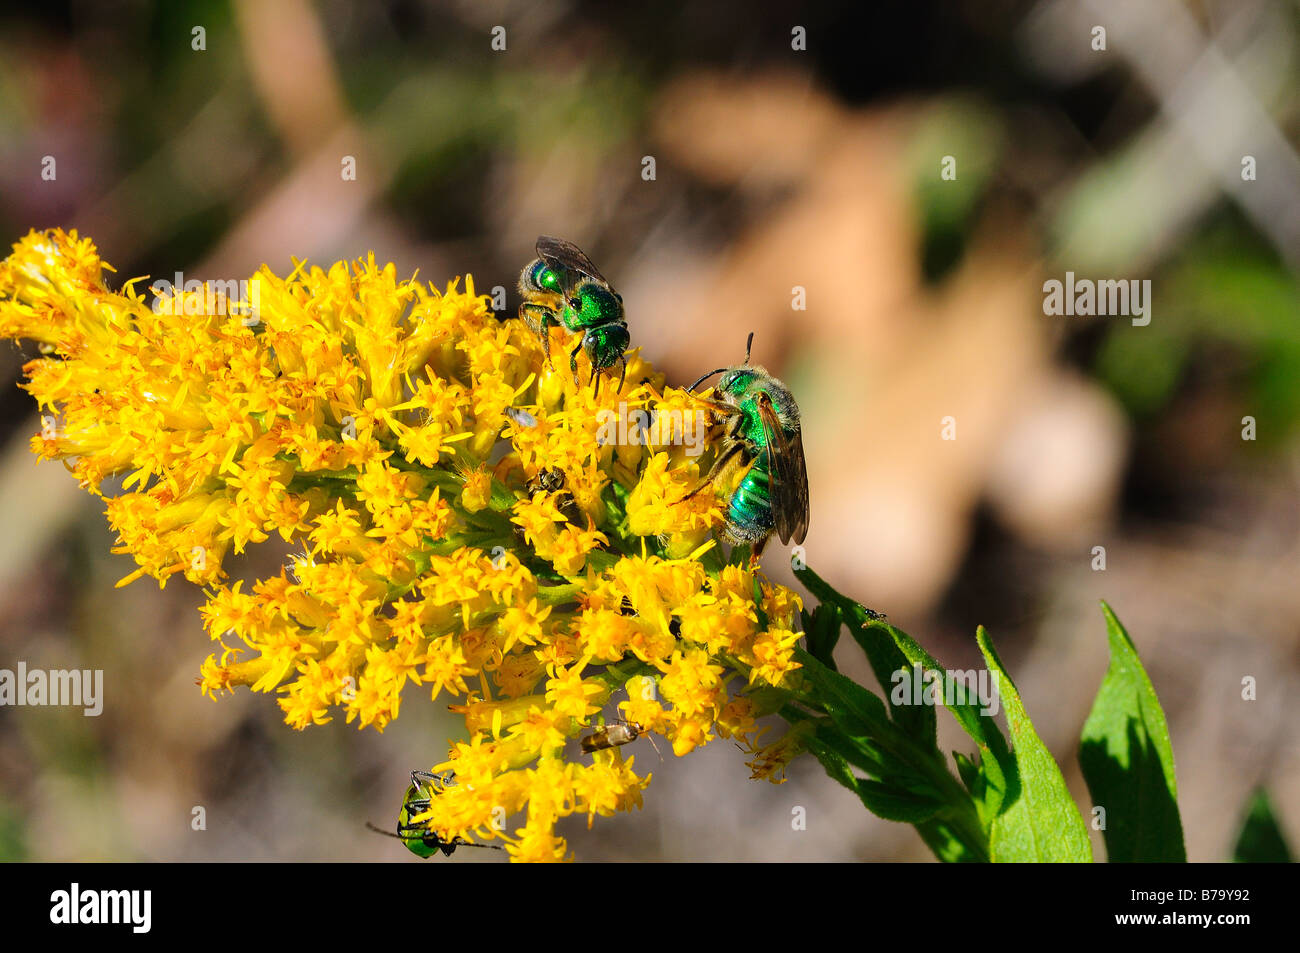 green sweet bees on goldenrod wildflower - Stock Image